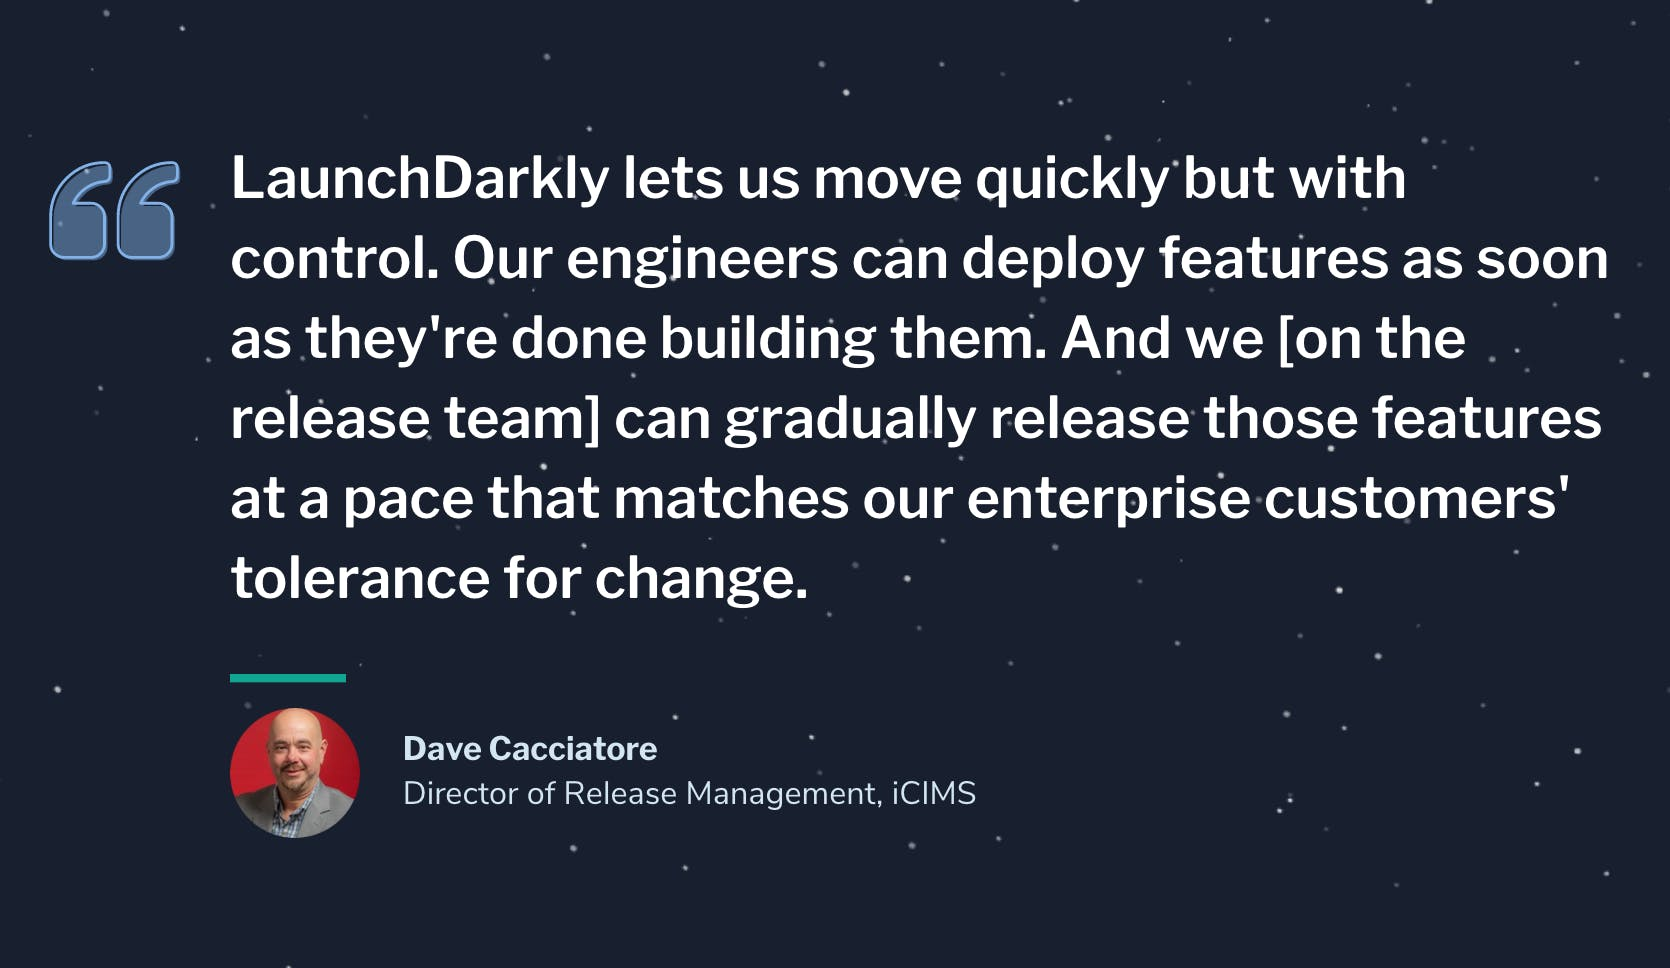 iCIMS-release-manager-quote-LaunchDarkly